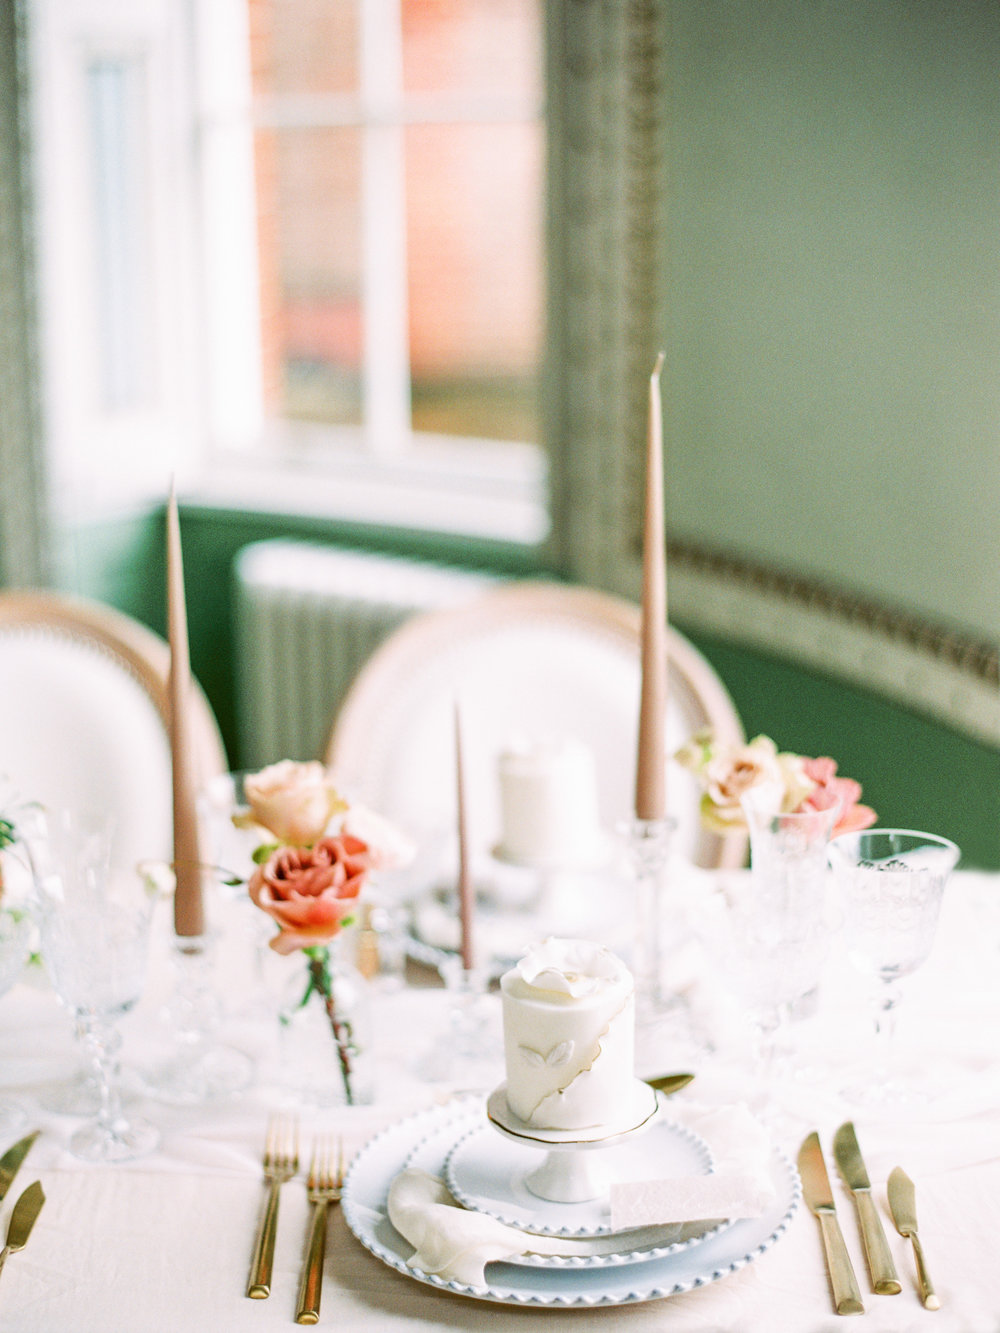 The Timeless Stylist-Elegant and Romantic Wedding Styling-Classic Neutral Wedding Table Styling with Gold Cutlery